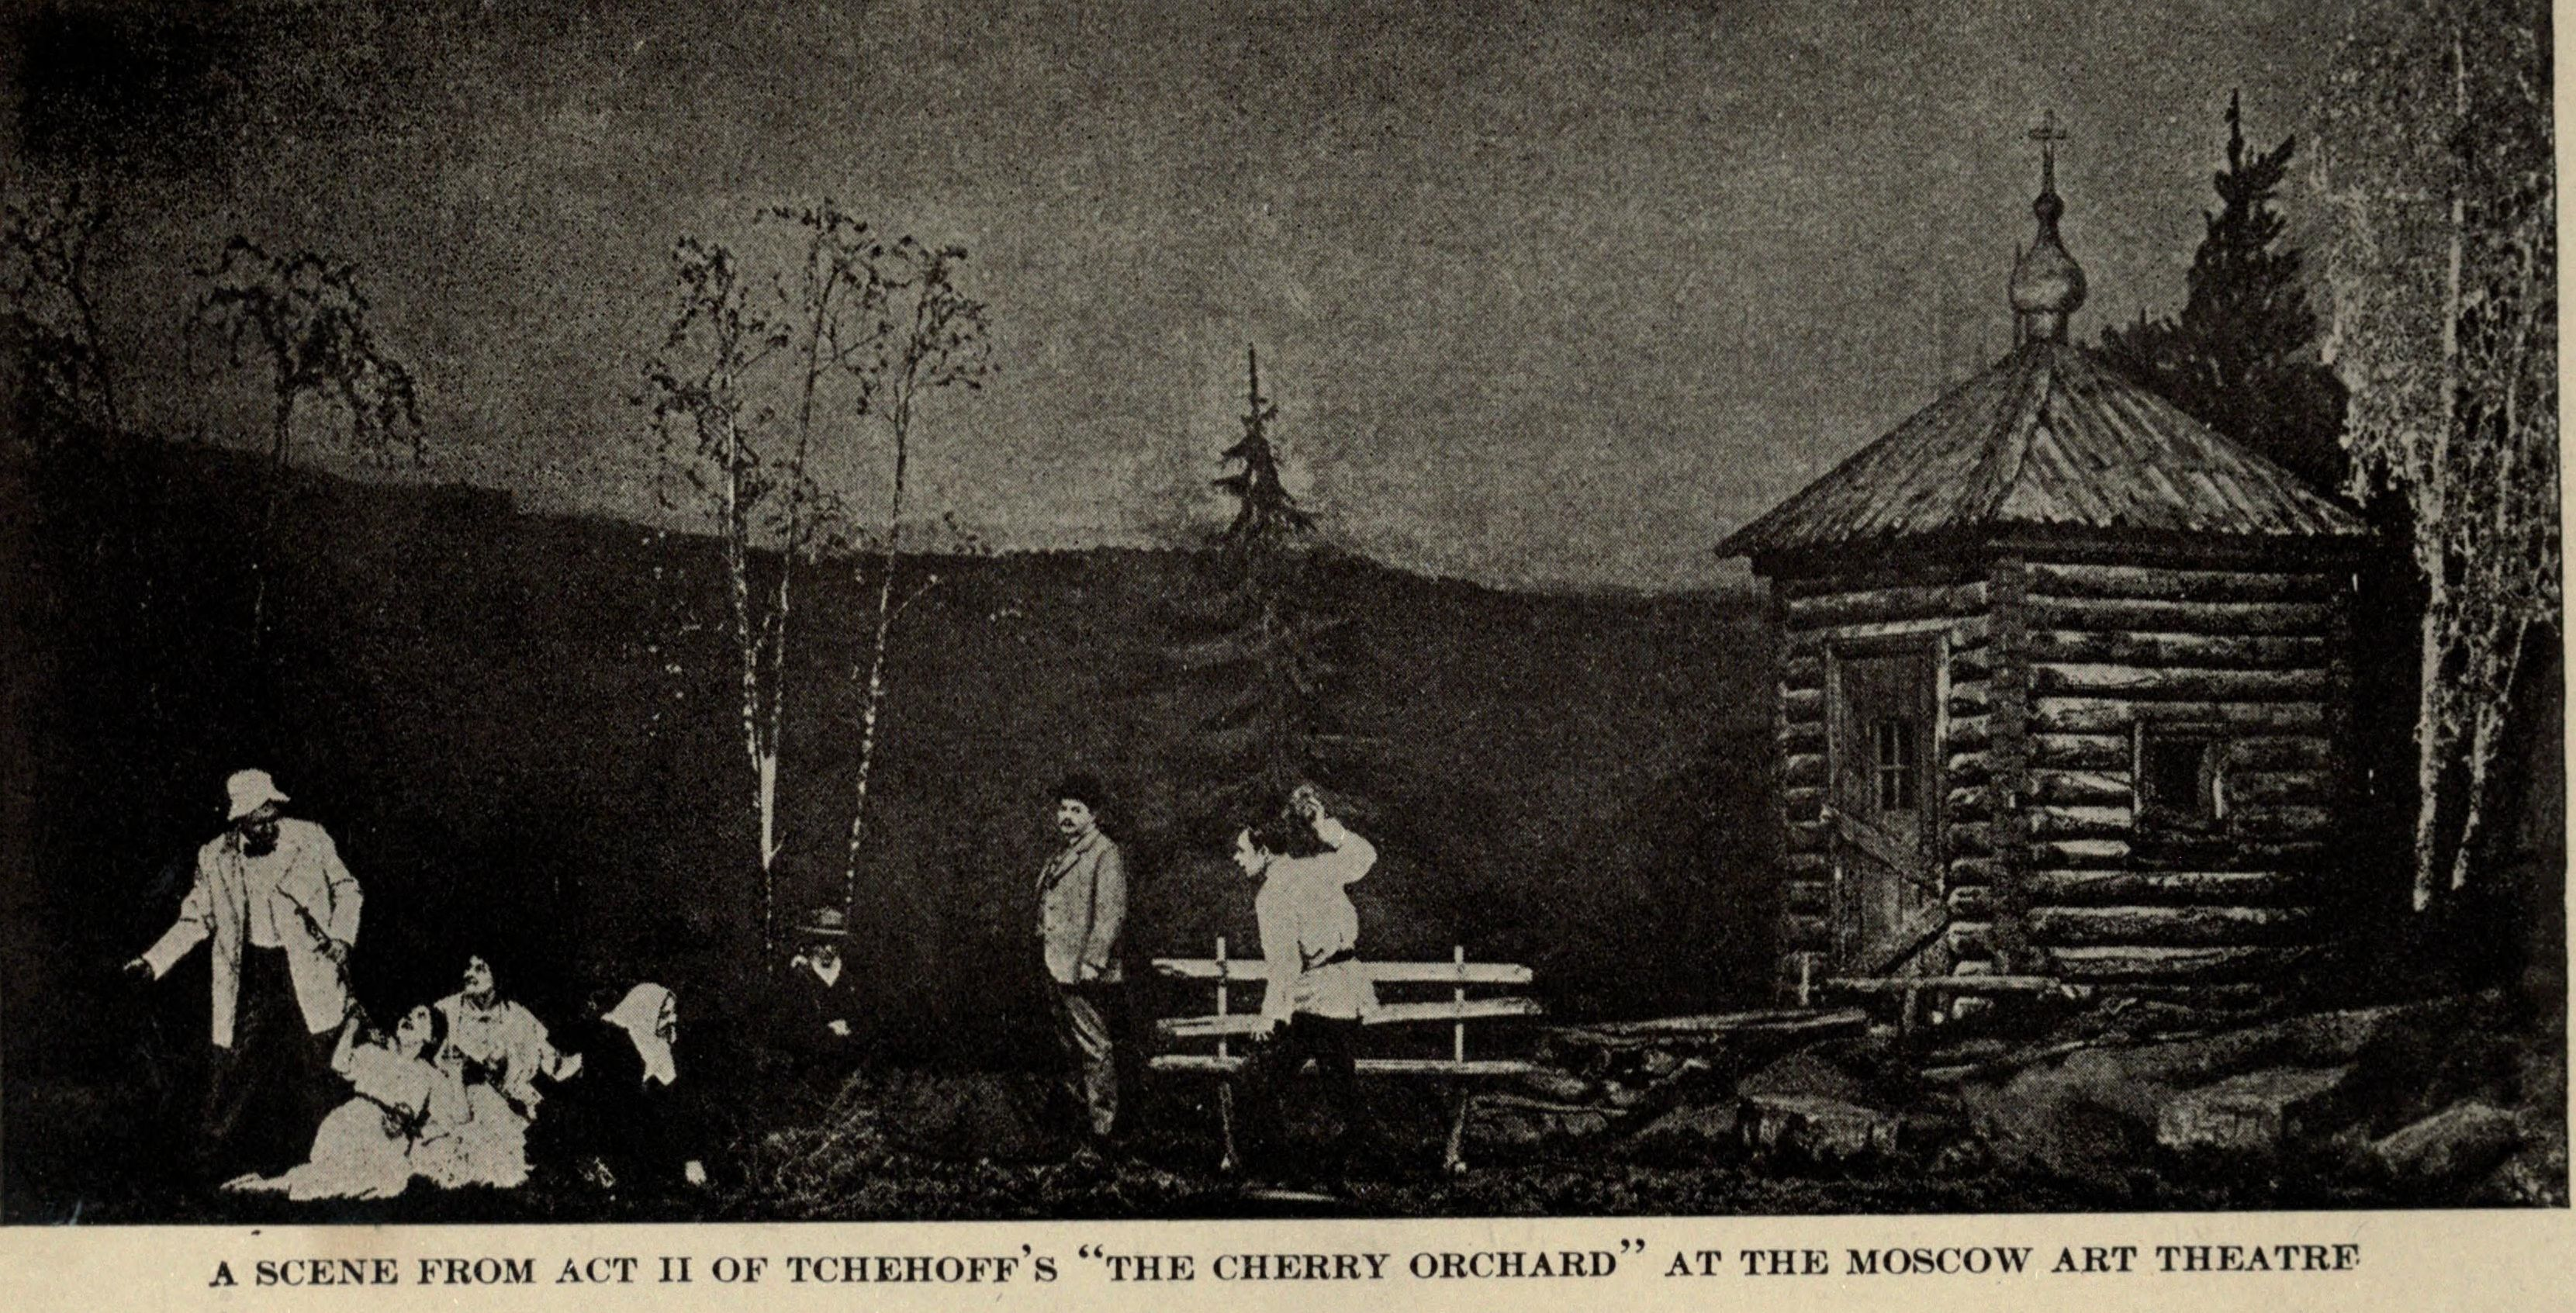 http://upload.wikimedia.org/wikipedia/commons/9/90/The_Cherry_Orchard_Act_3.jpg